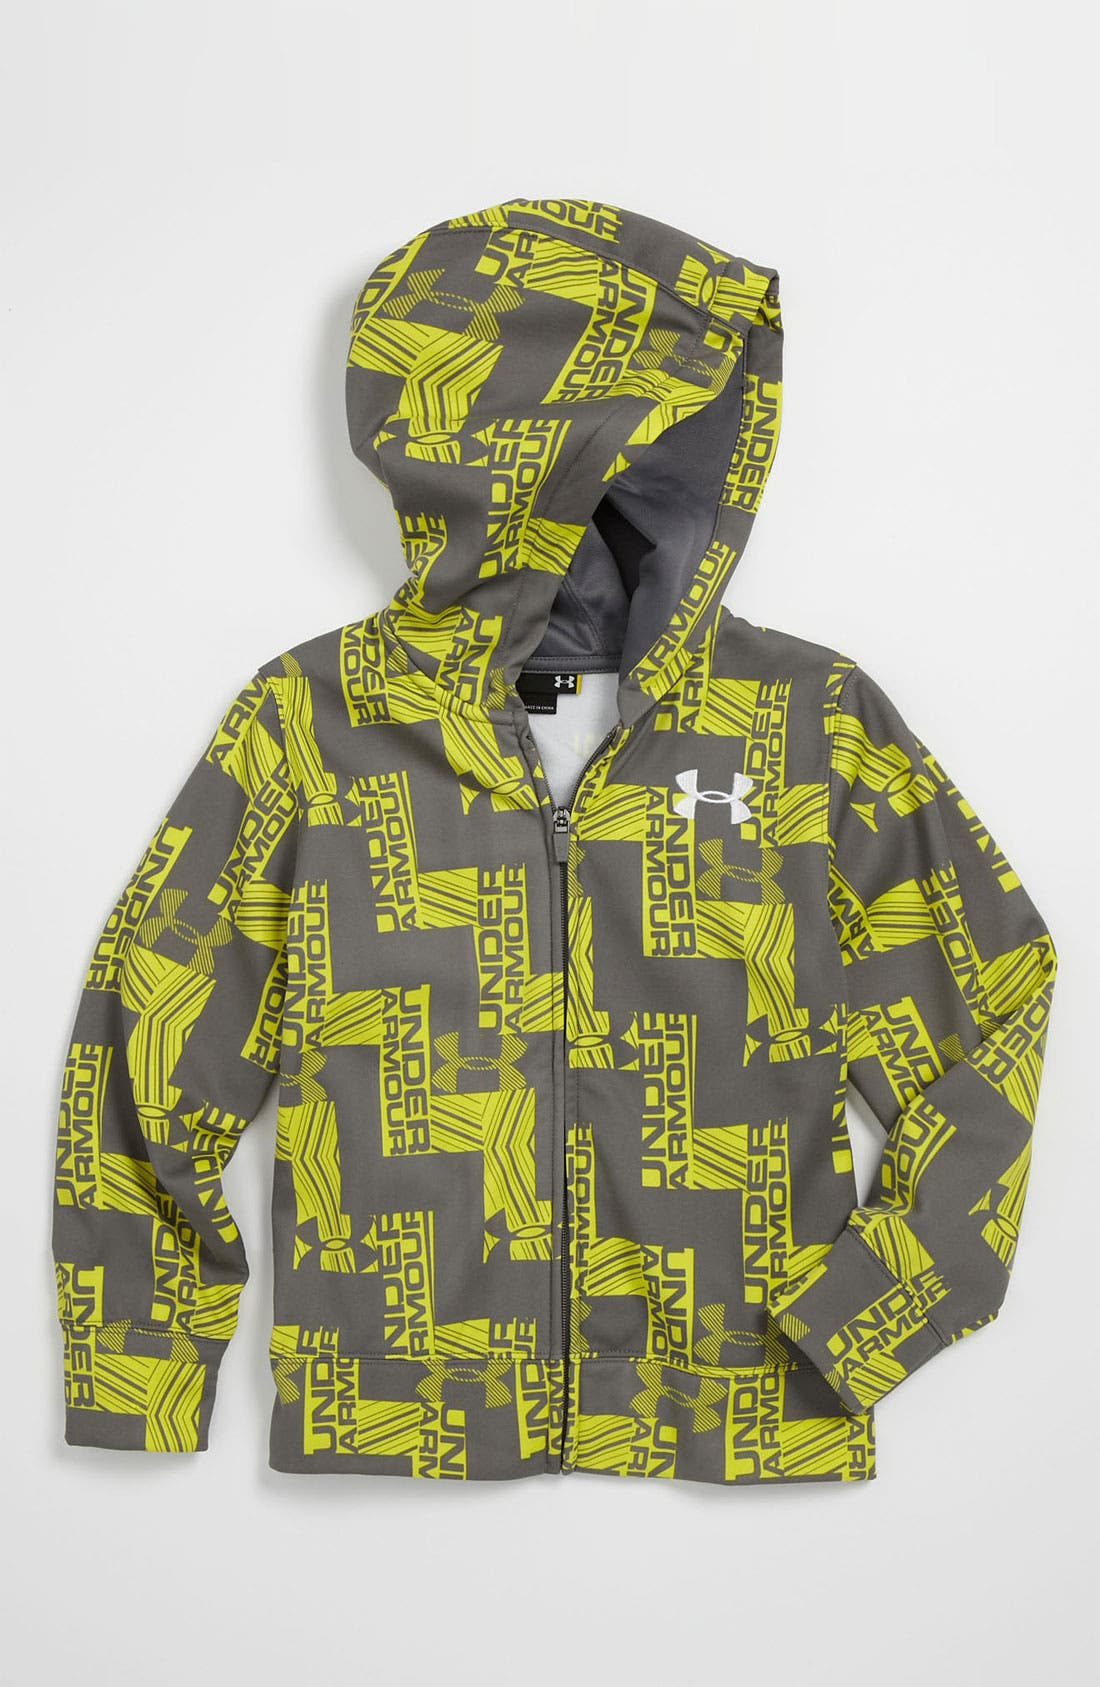 Alternate Image 1 Selected - Under Armour 'Cold Activated' Color Changing All Season Gear® Hoodie (Little Boys)